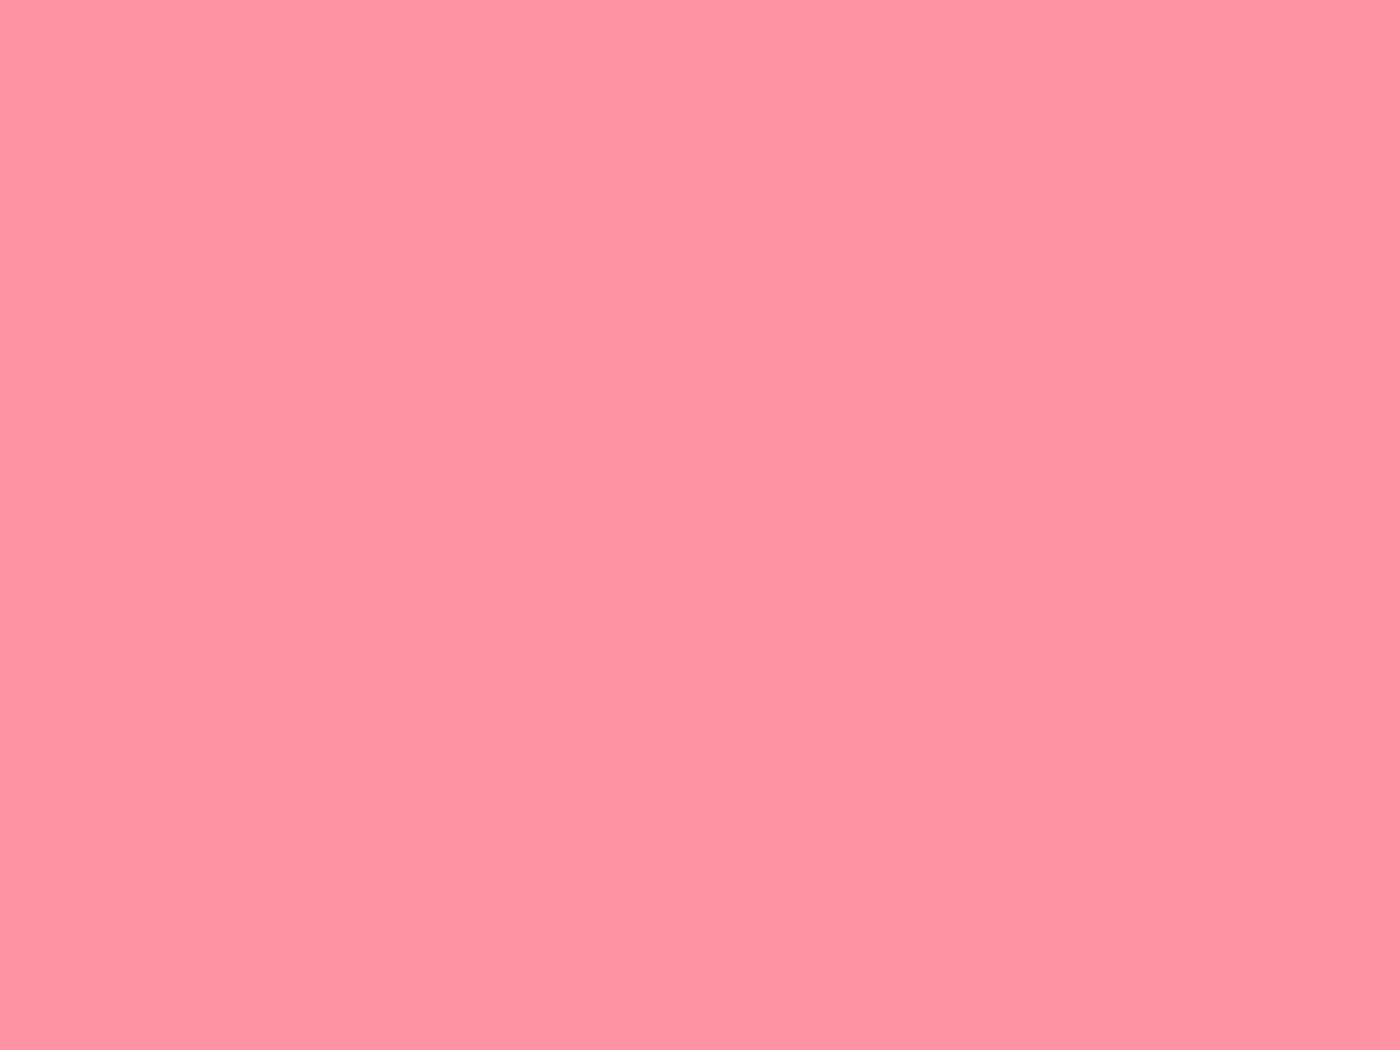 1400x1050 Salmon Pink Solid Color Background